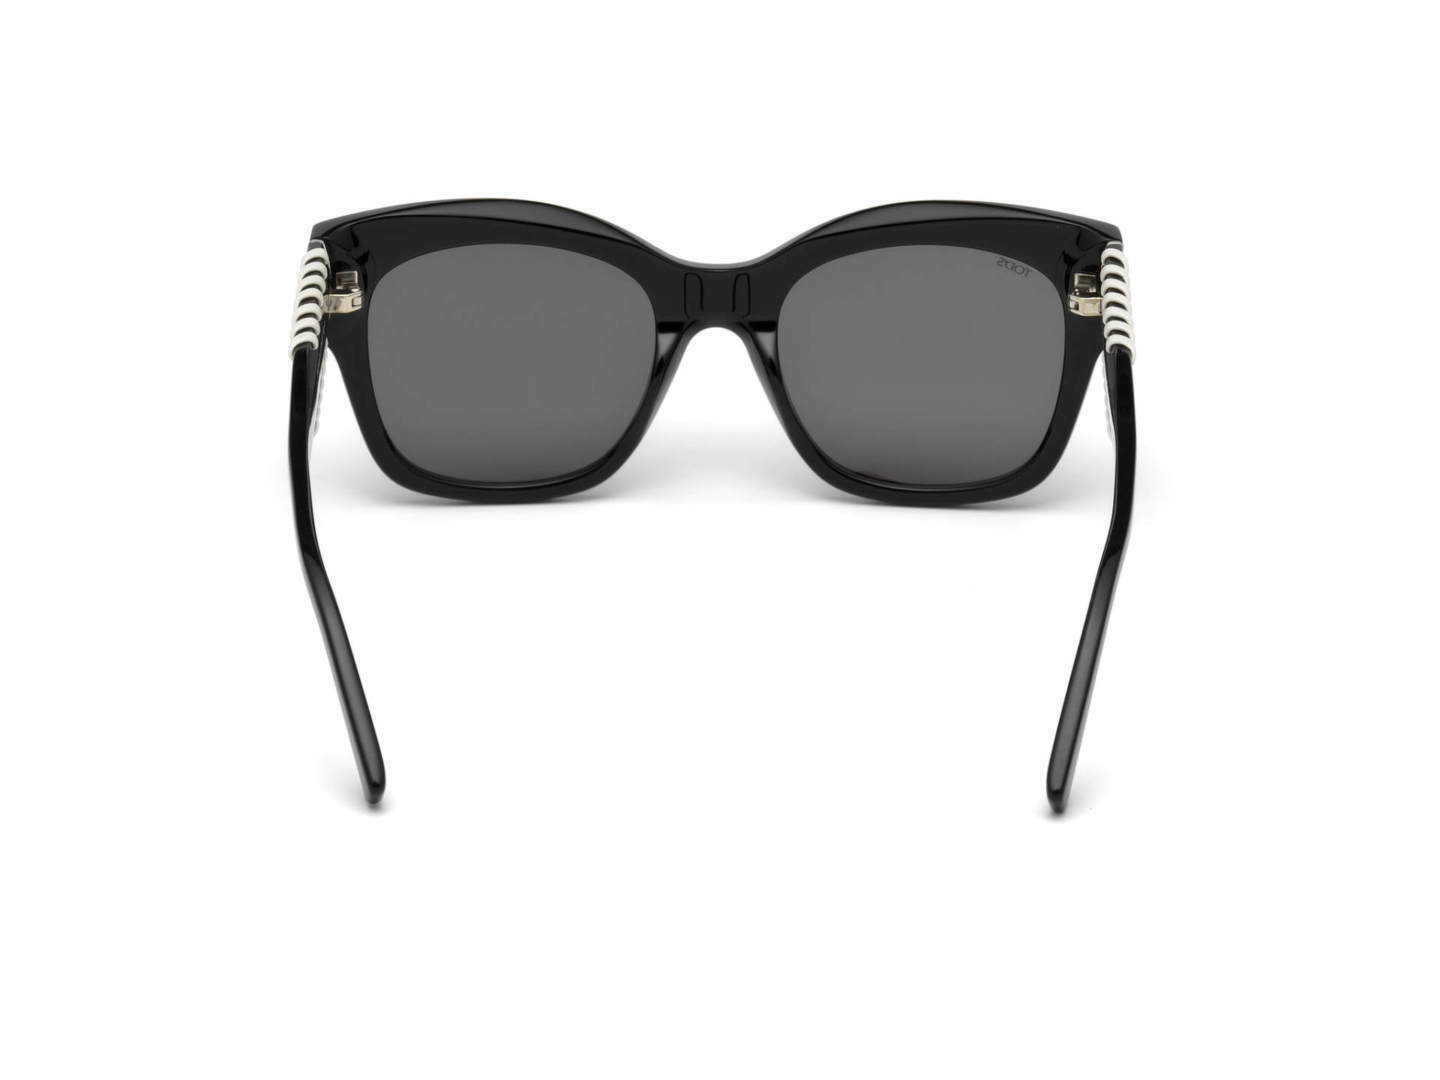 New Tod's Sunglasses TO 193/s 01A (53-20-140)